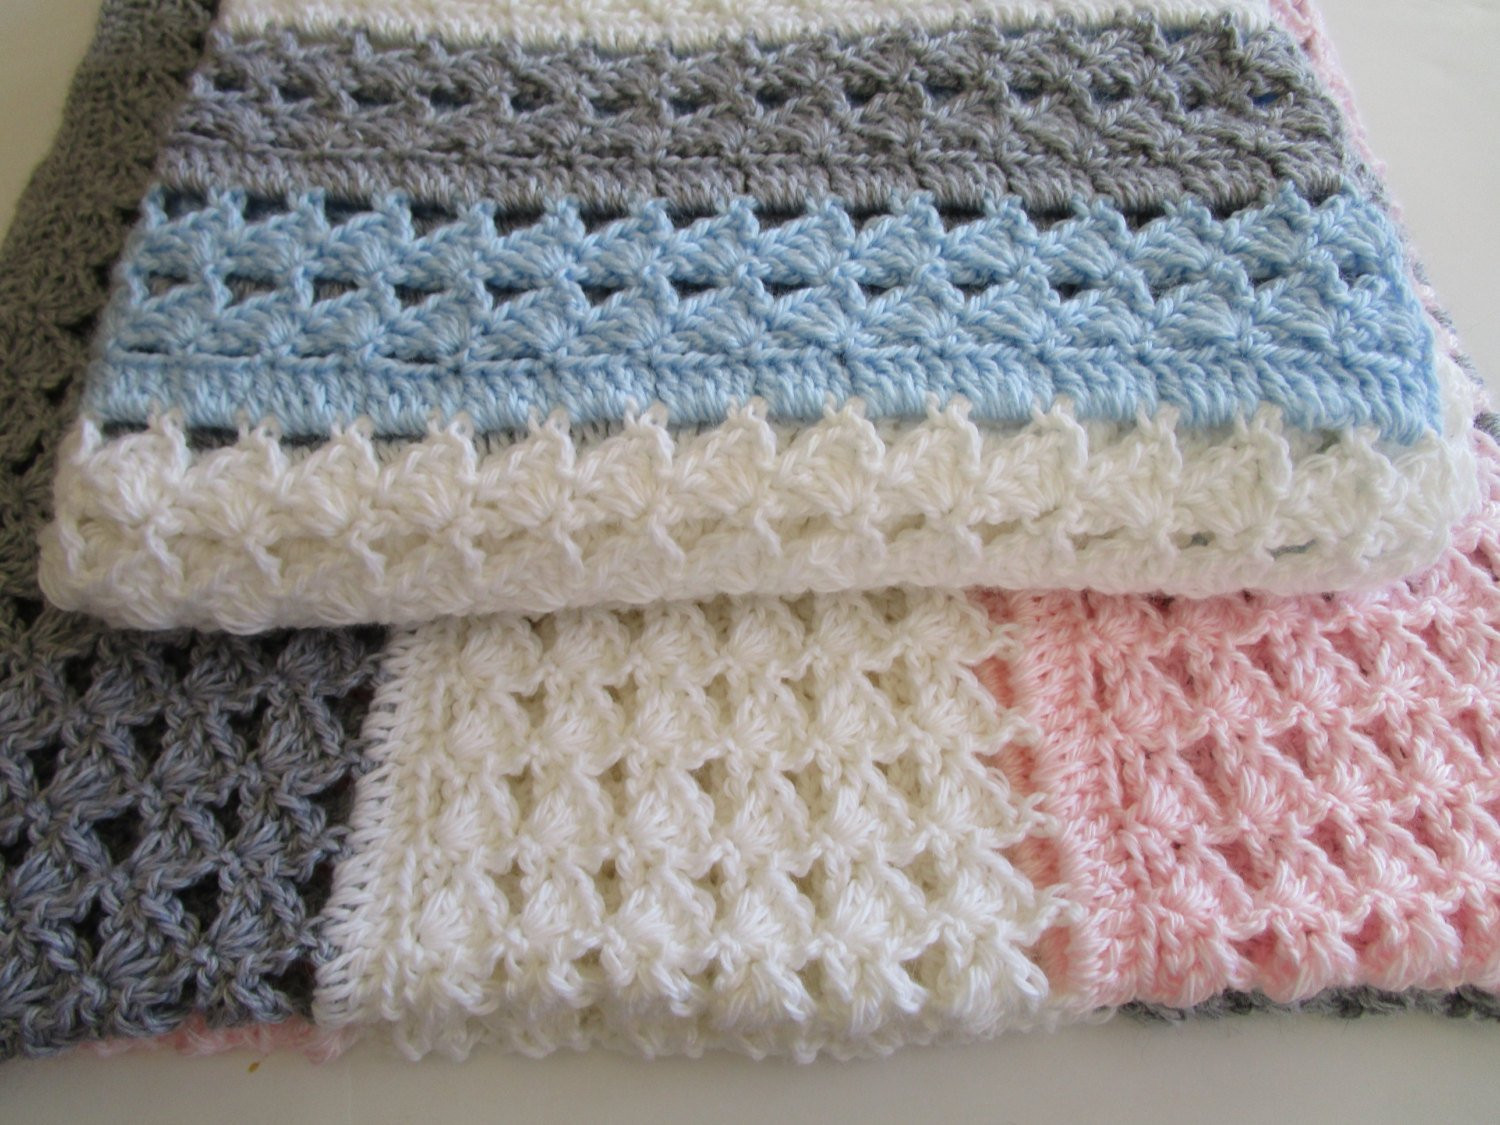 Easy Crochet Blanket Pattern Slanted Shell Stitch Variation